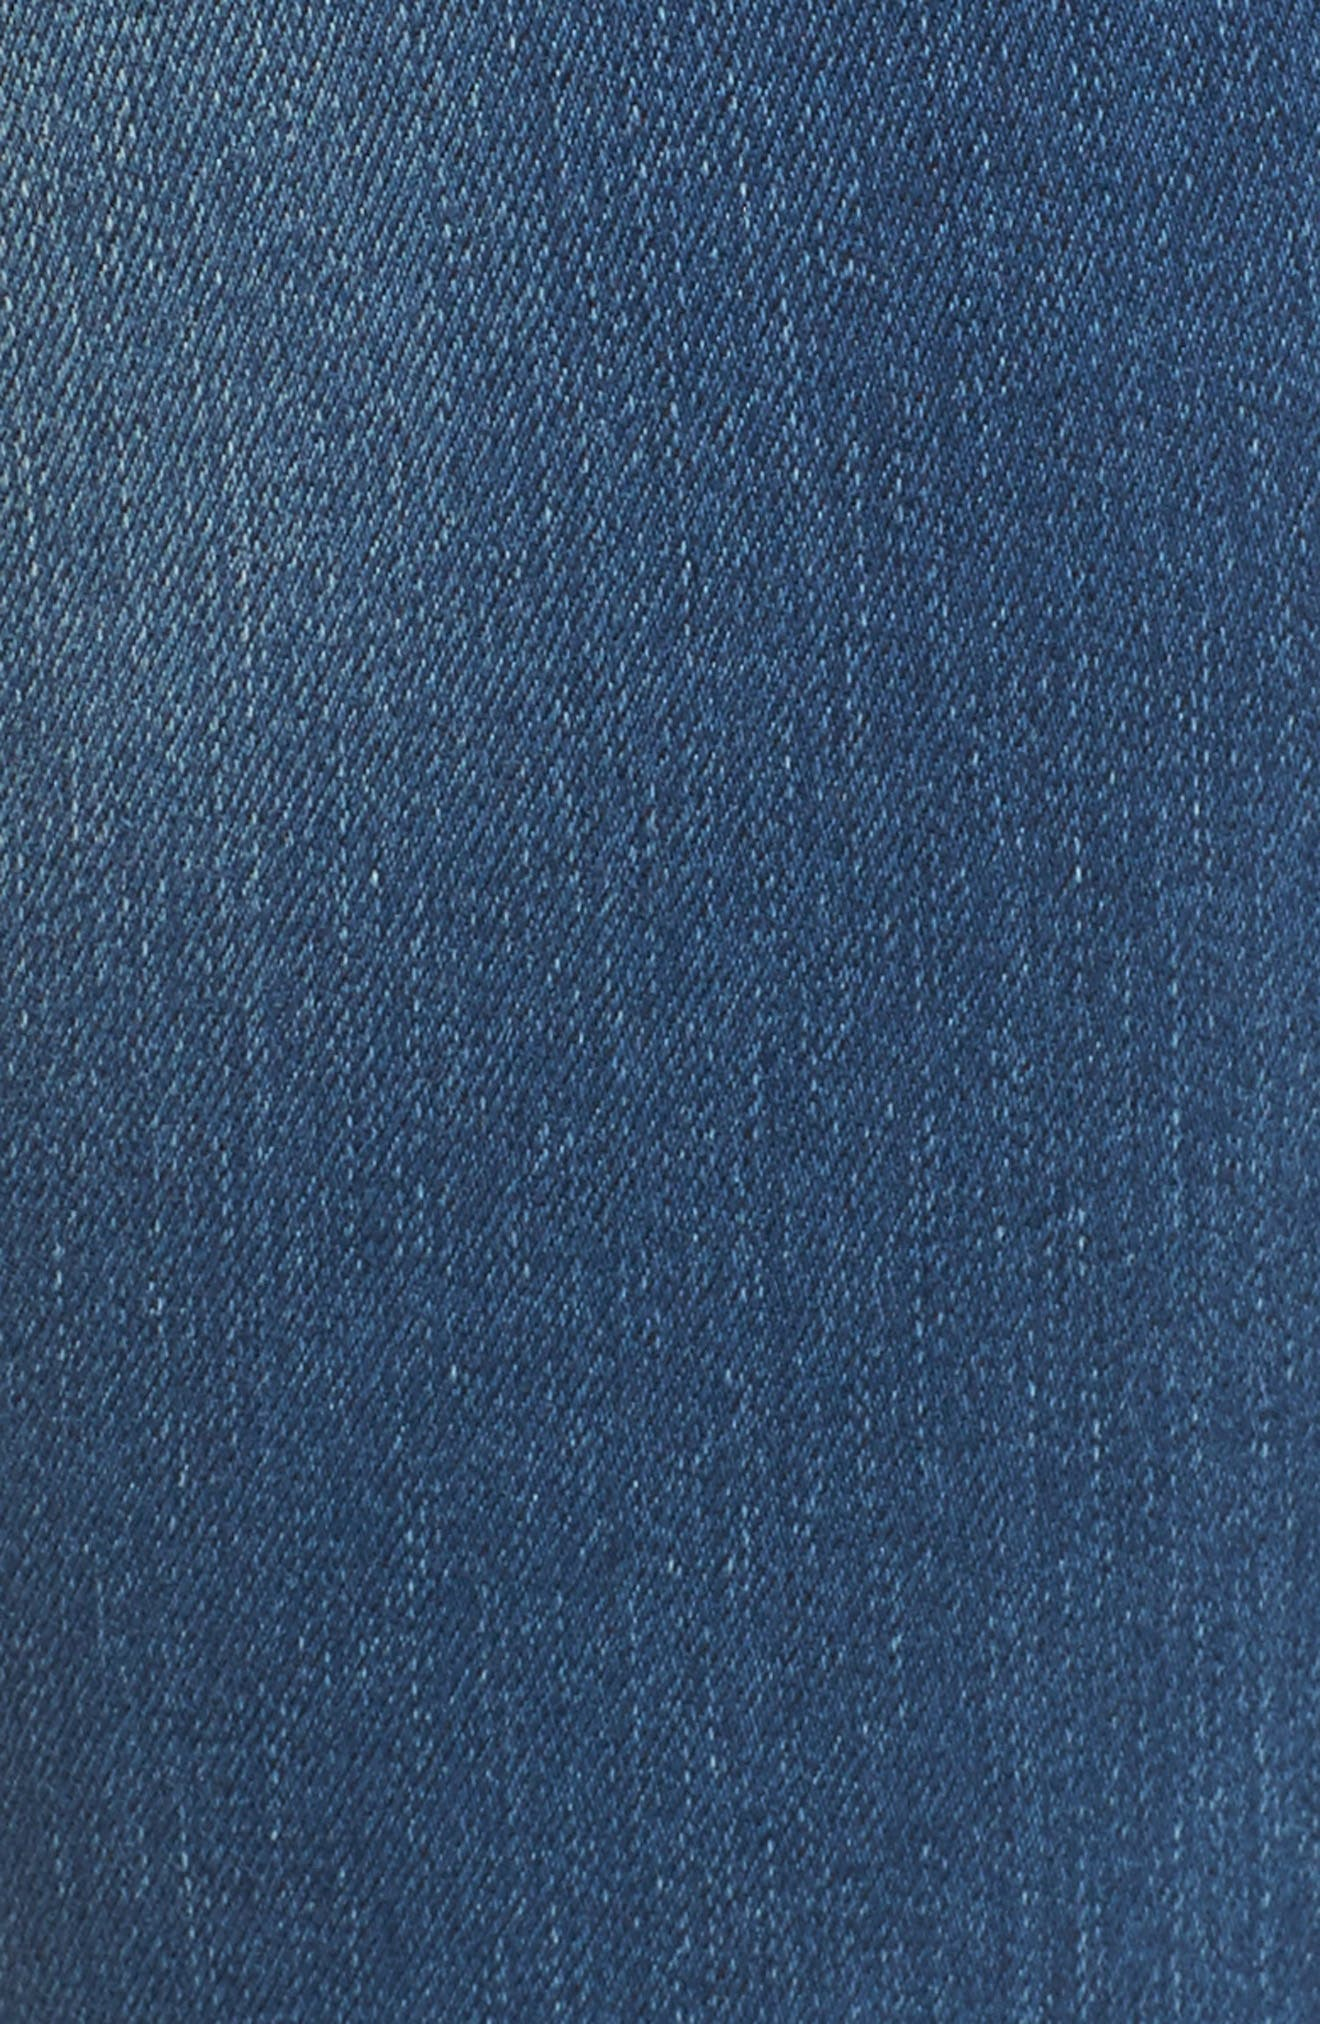 Stella Low Rise Skinny Jeans,                             Alternate thumbnail 5, color,                             Nu Authentic Indigo